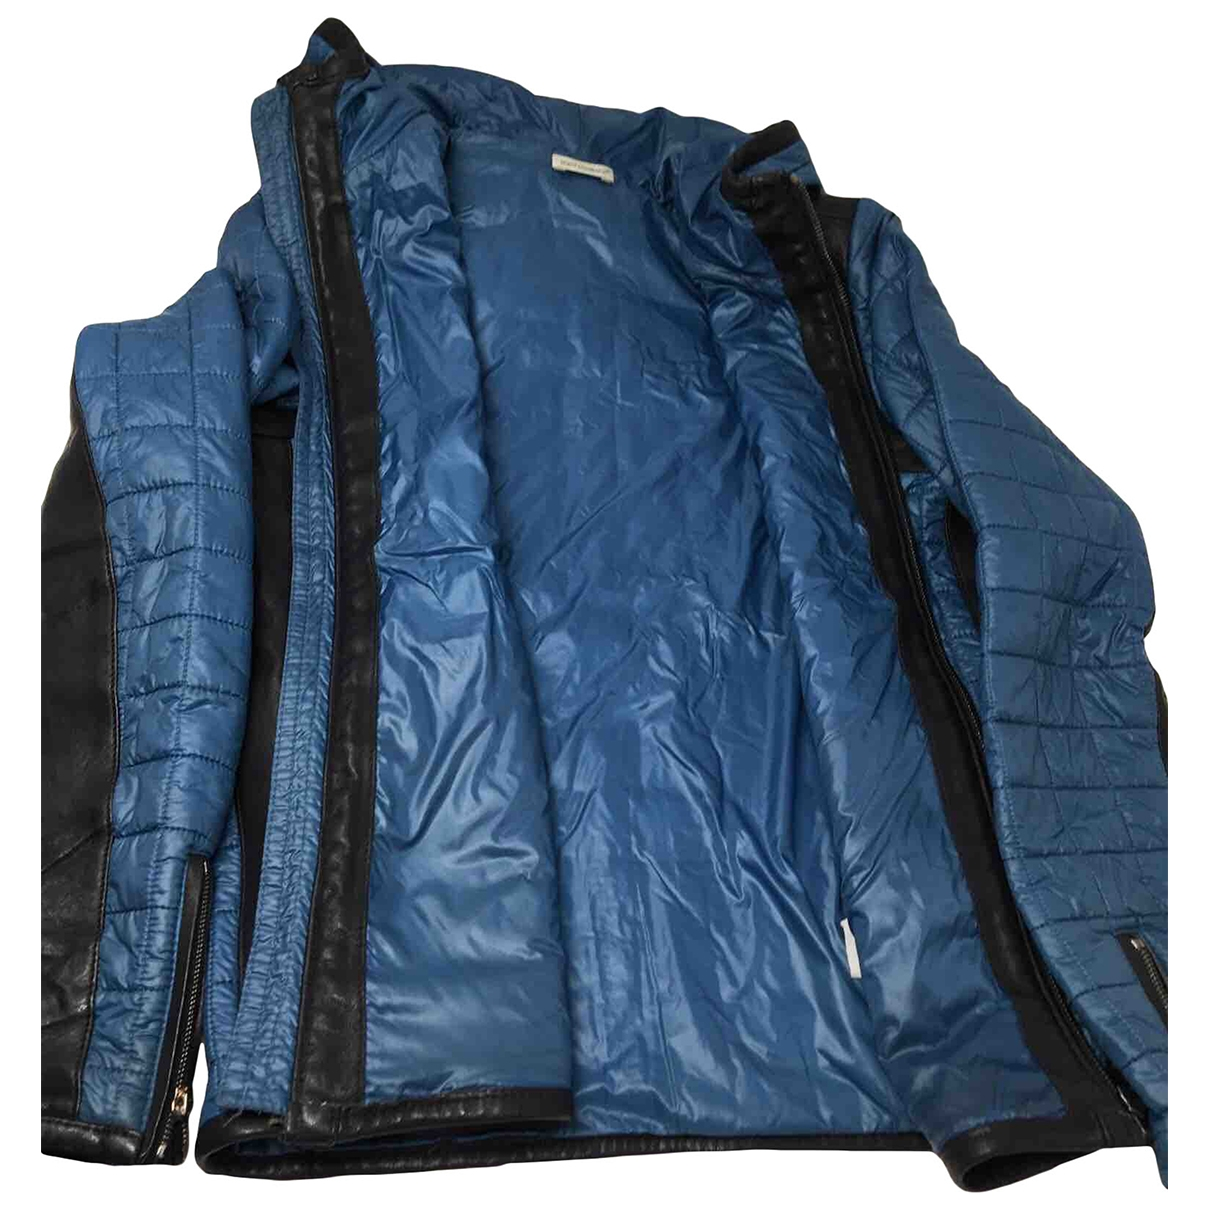 Dolce & Gabbana \N Blue jacket & coat for Kids 10 years - until 56 inches UK